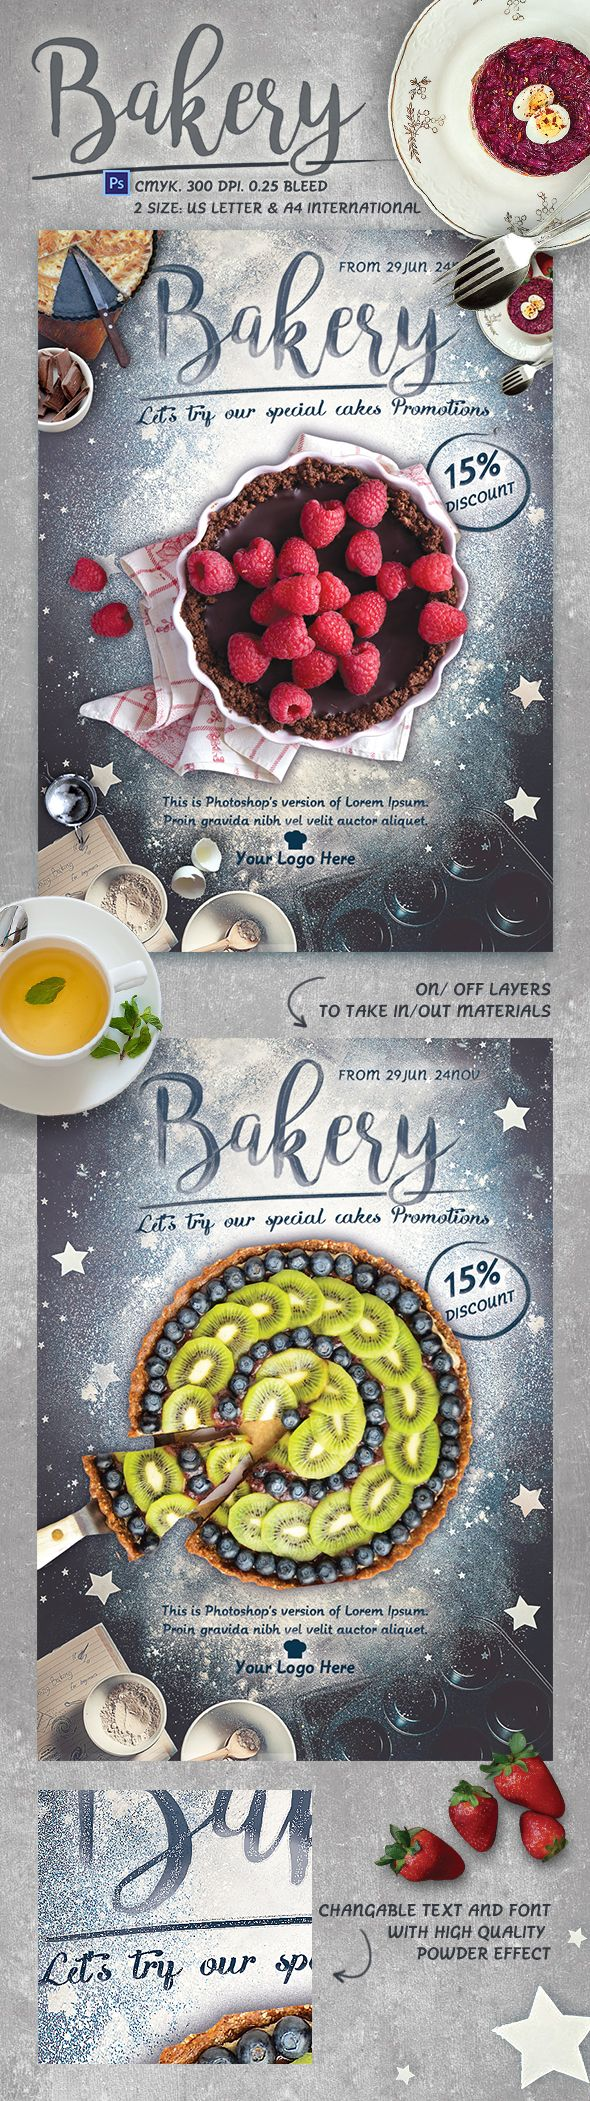 bakery promotion flyer template restaurant bakeries and promotion bakery promotion flyer template bake baker baking breakfast cake coffee shop cook cooking discount flyer hand made lotteria mousse powder